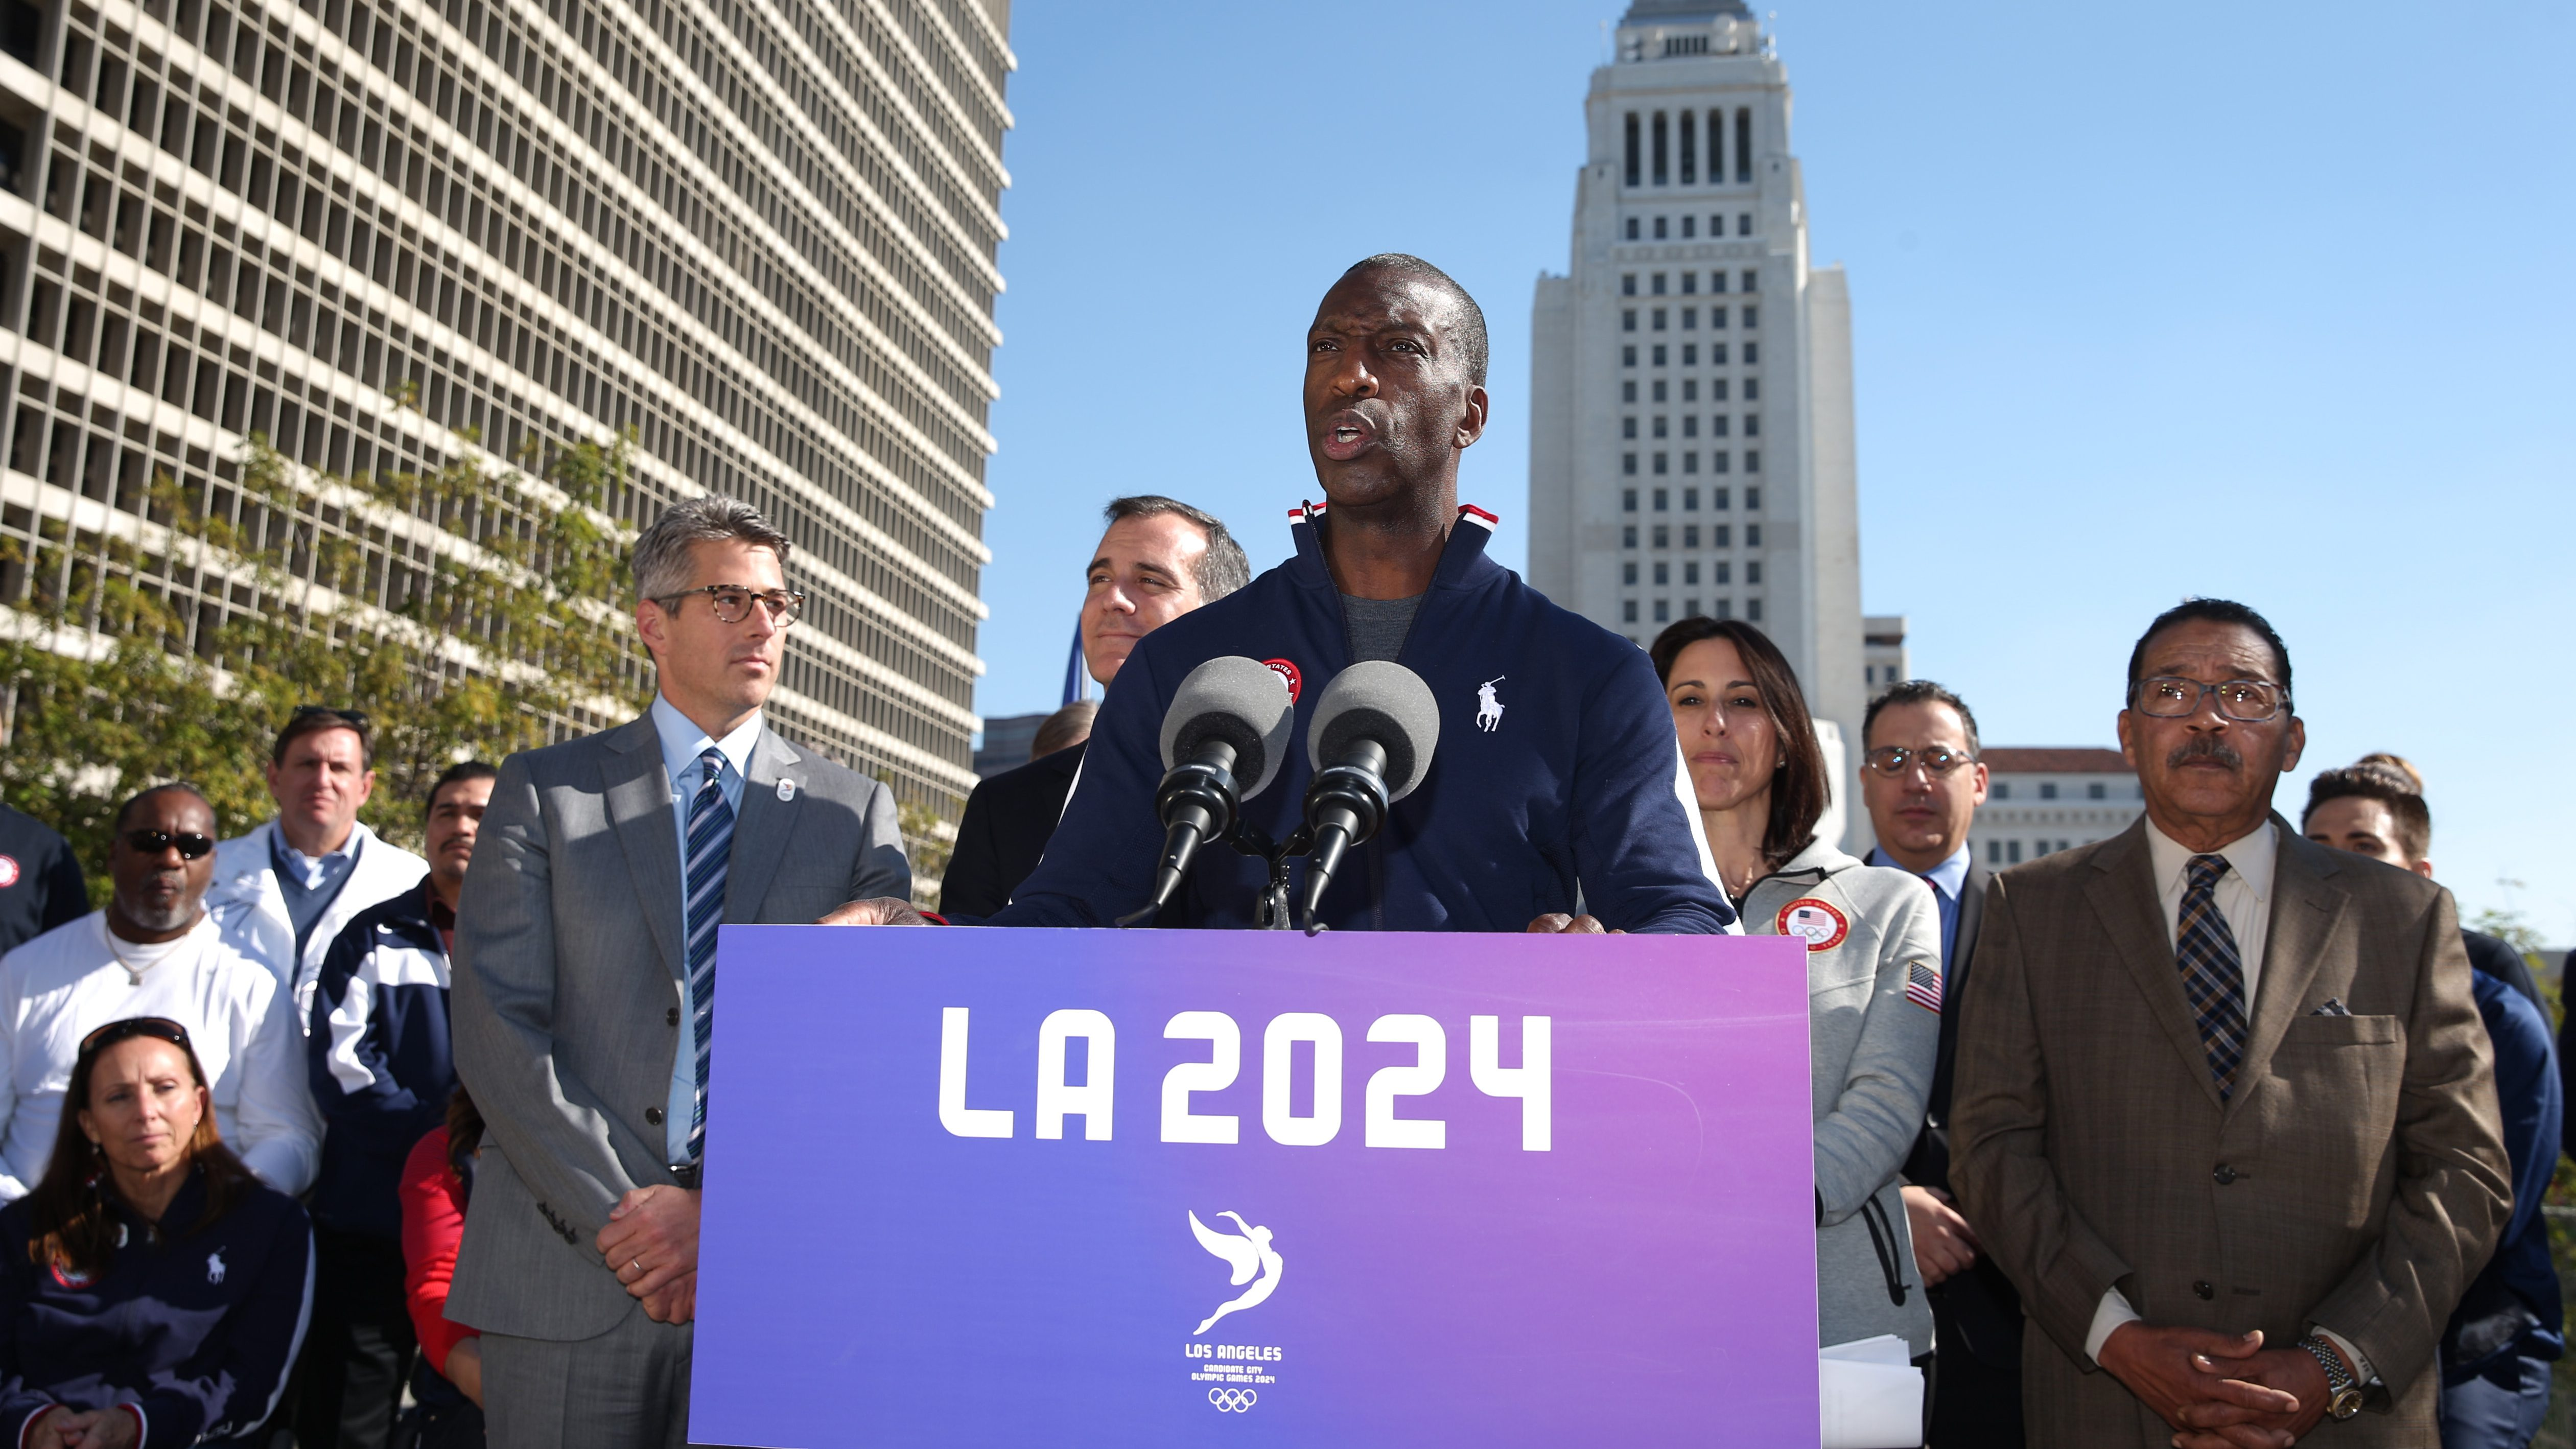 Michael Johnson at LA 2024 Olympics bid opening